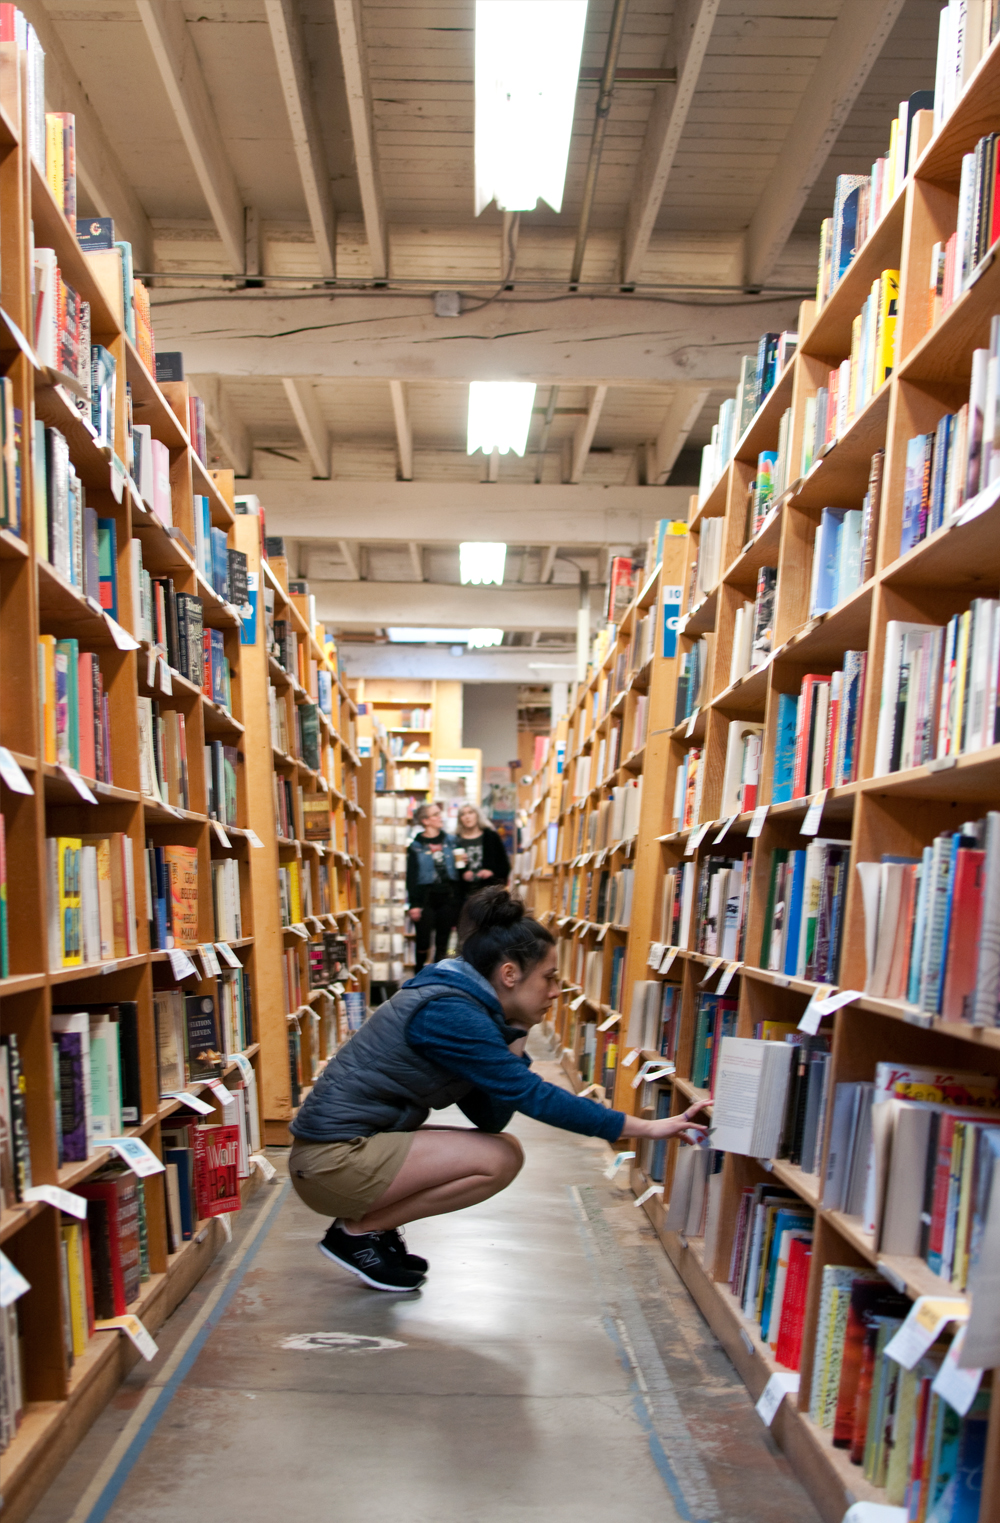 Portland-Activities-Powell Books-01.jpg